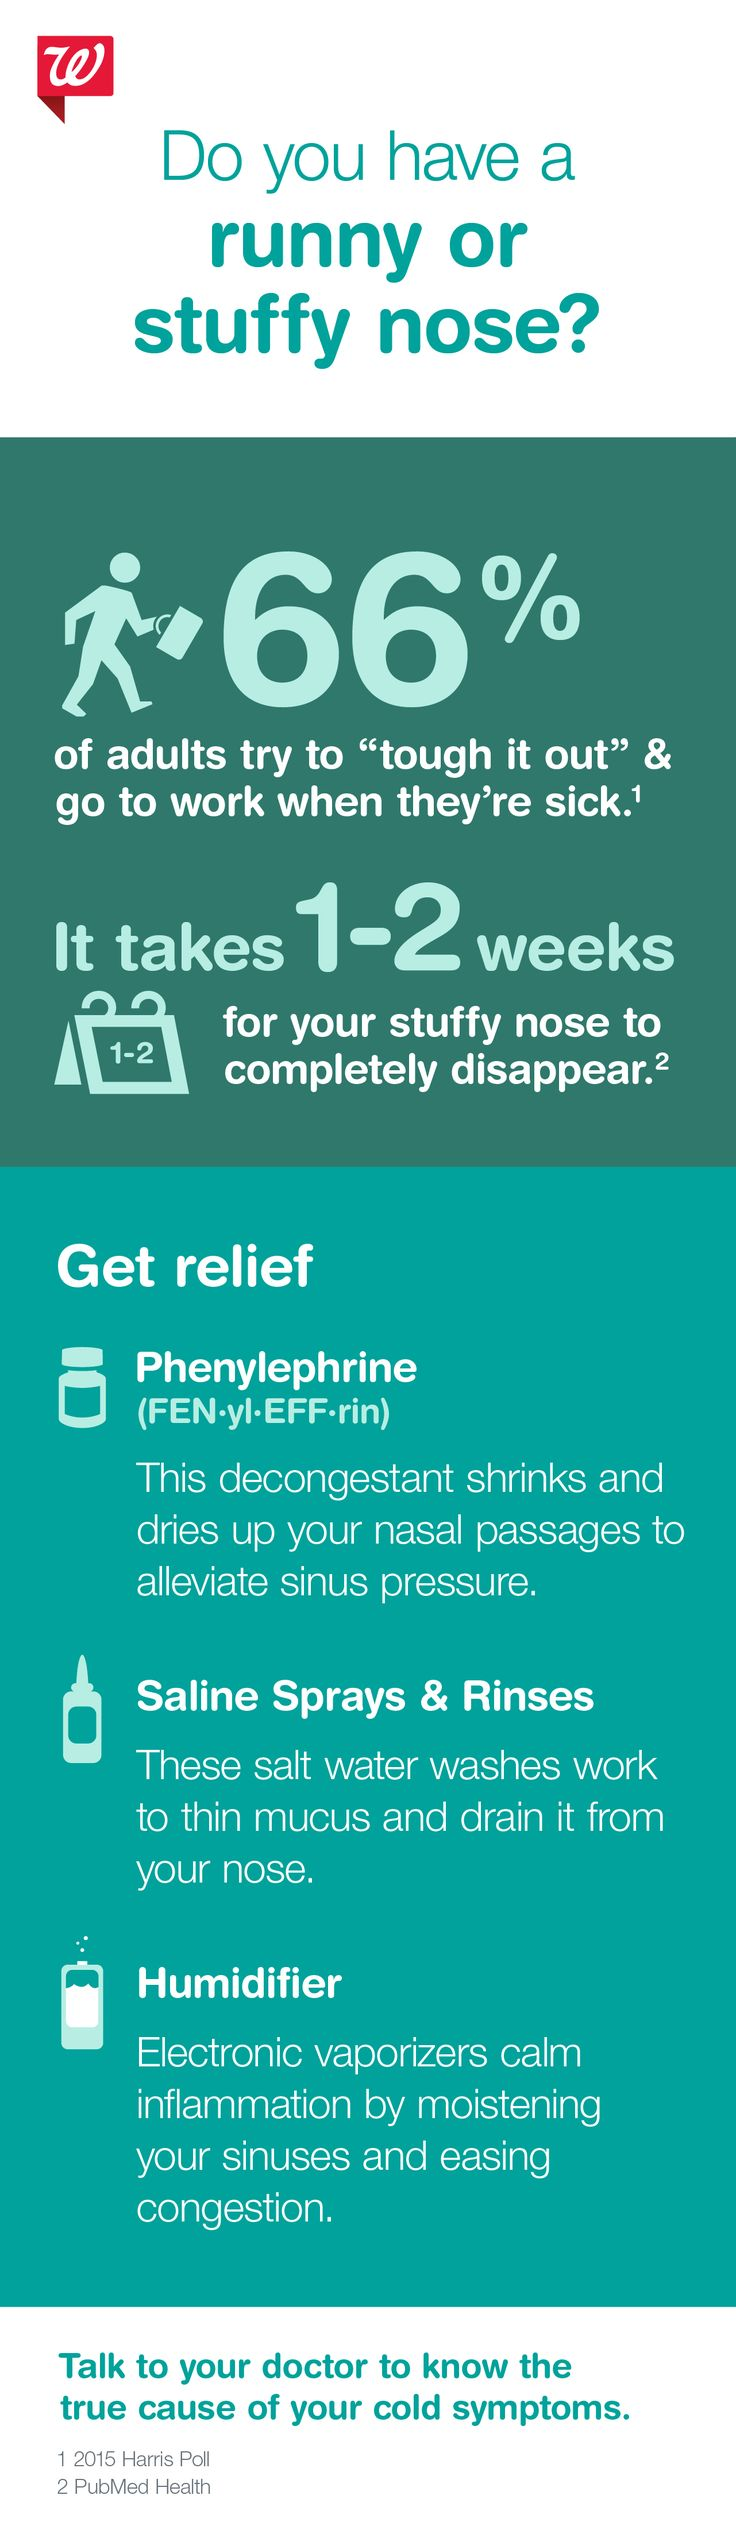 It may take about 2 weeks for your stuffy nose to clear out. Don't sniffle your way through it—find relief fast.